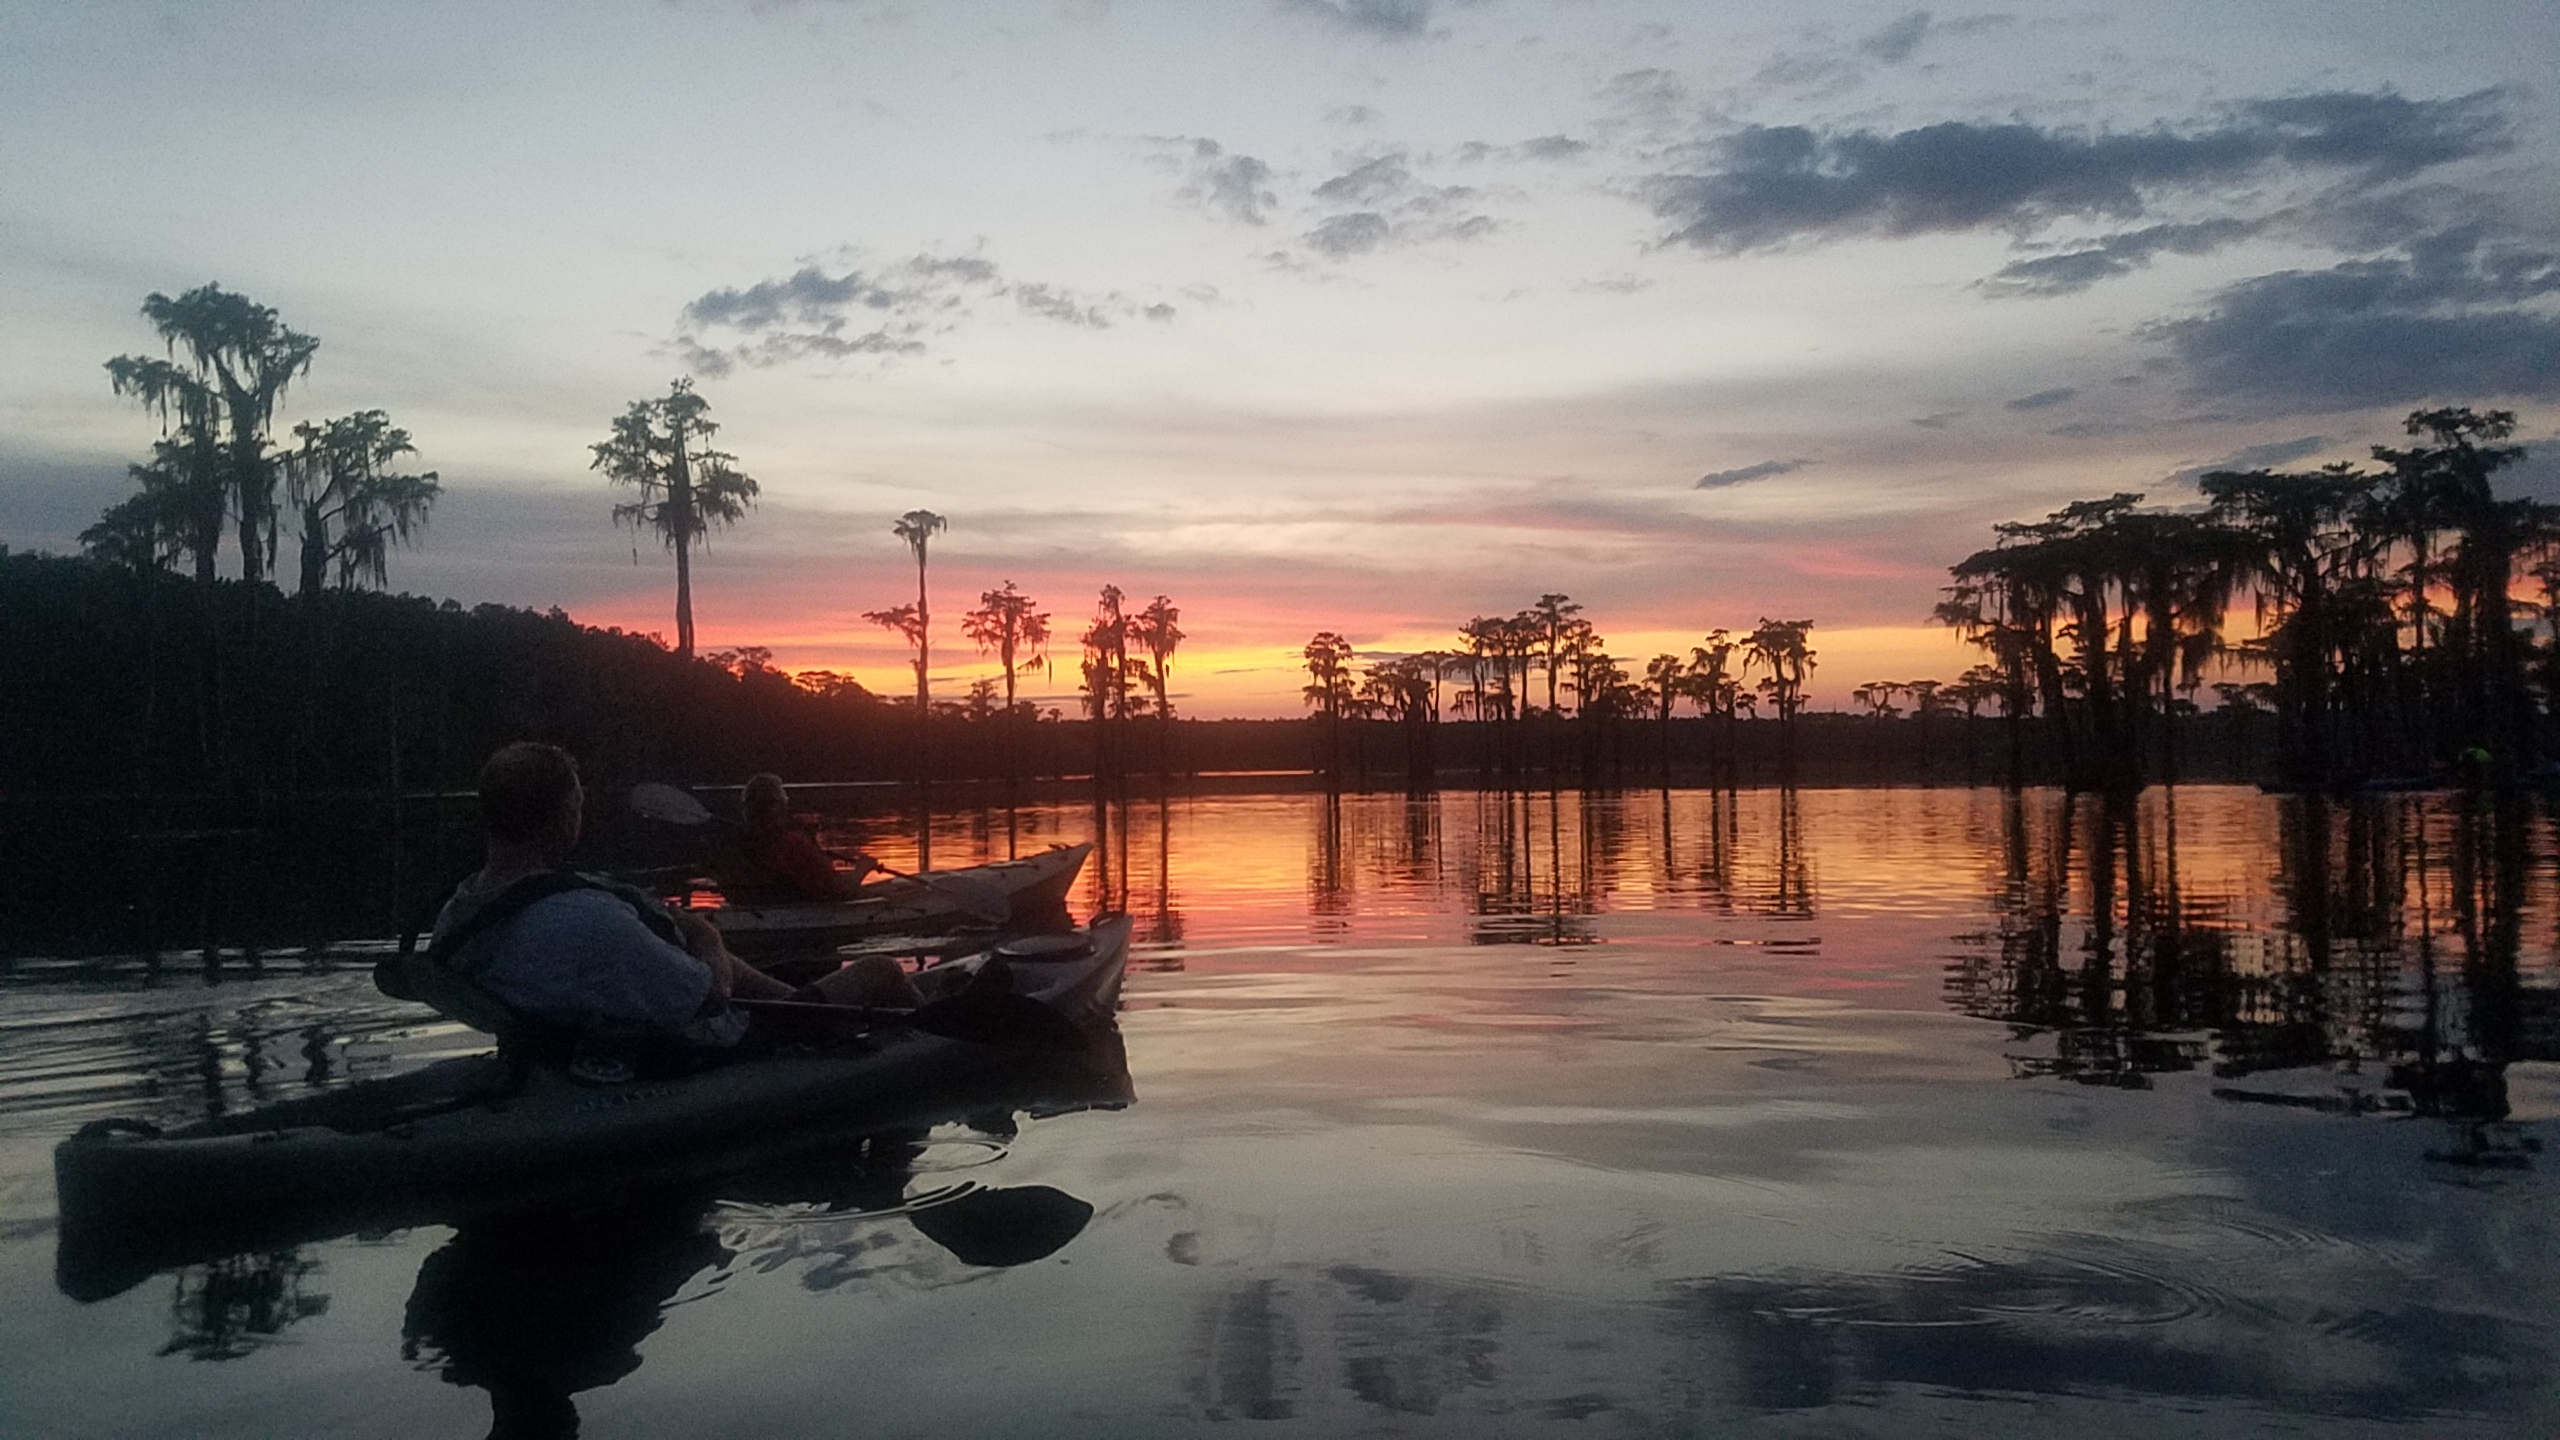 2560x1440 Sunset, On the water, in Banks Lake Sunset Paddle, by John S. Quarterman, for WWALS.net, 27 July 2018